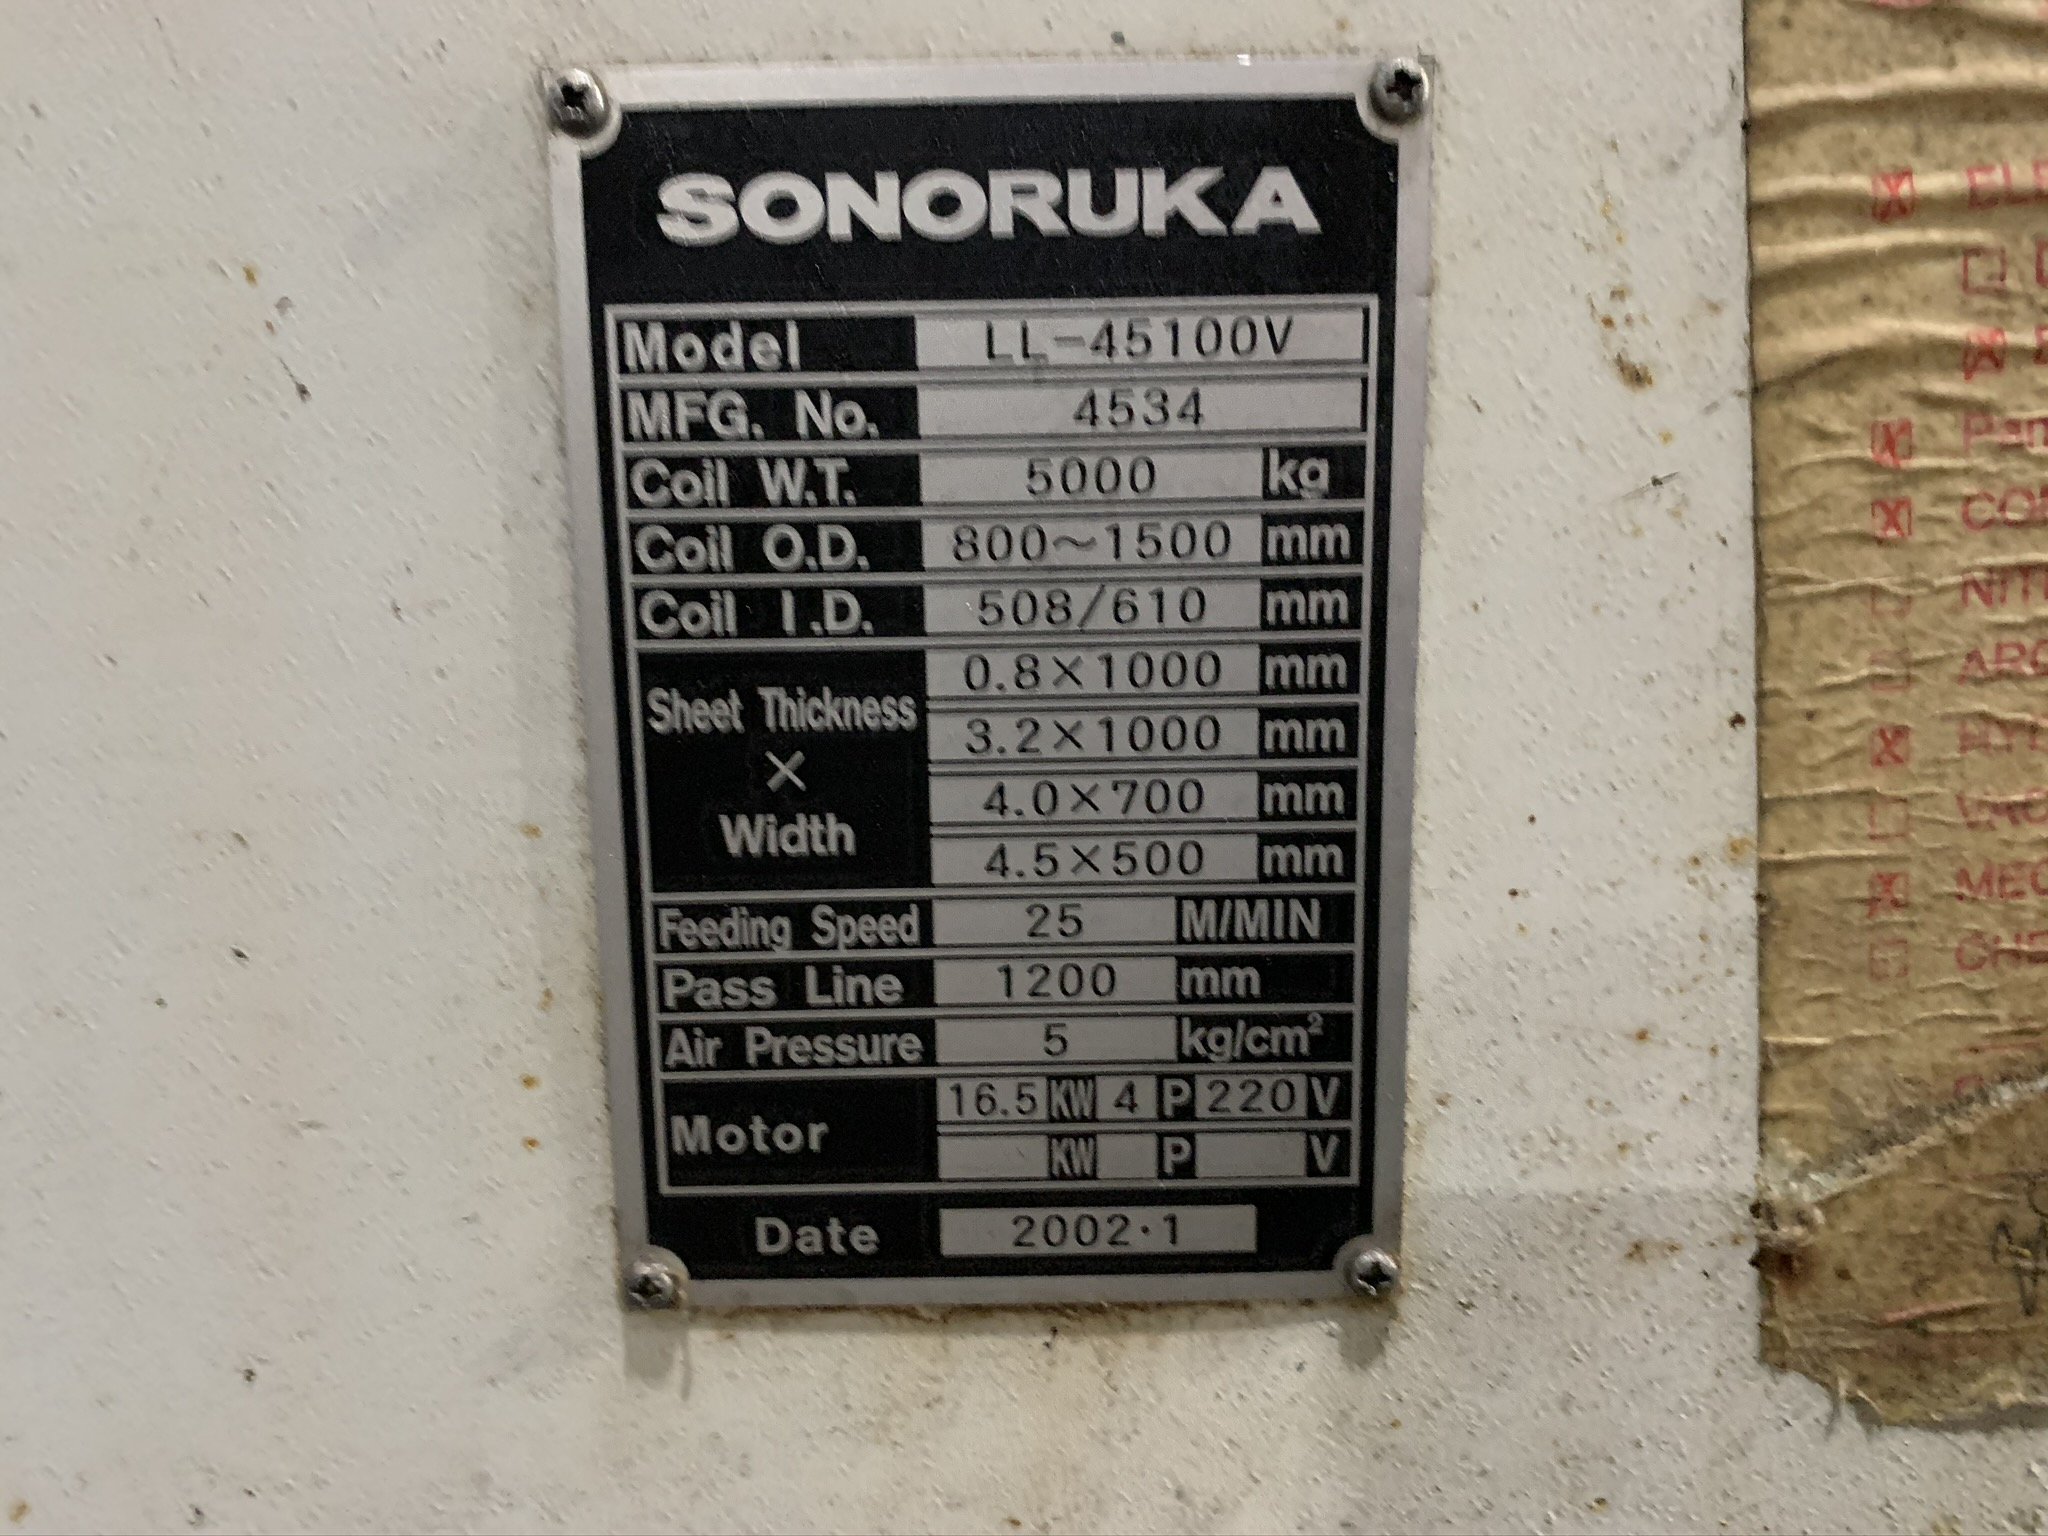 "11,000 LB. X 39"" X .177 SONORUKA SERVO FEED LINE; S/N 4533-4550, COIL WEIGHT 5,000 KG - 11,023 - Image 9 of 17"